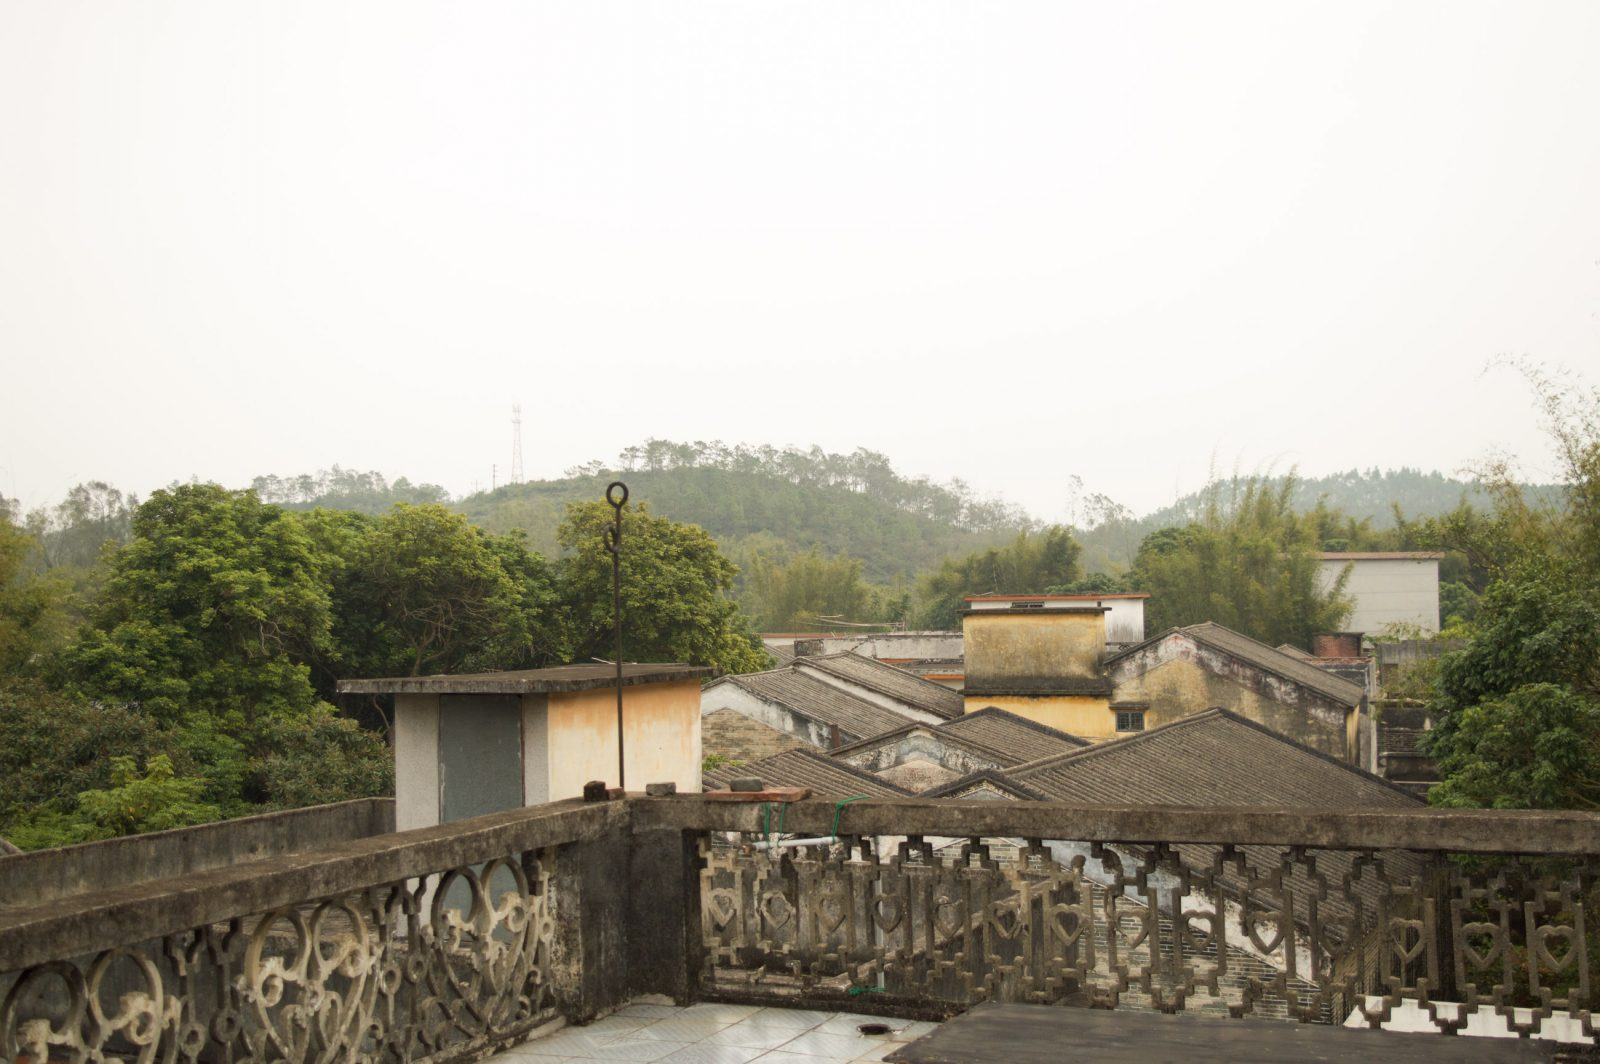 The view from the rooftop of a century-old home.